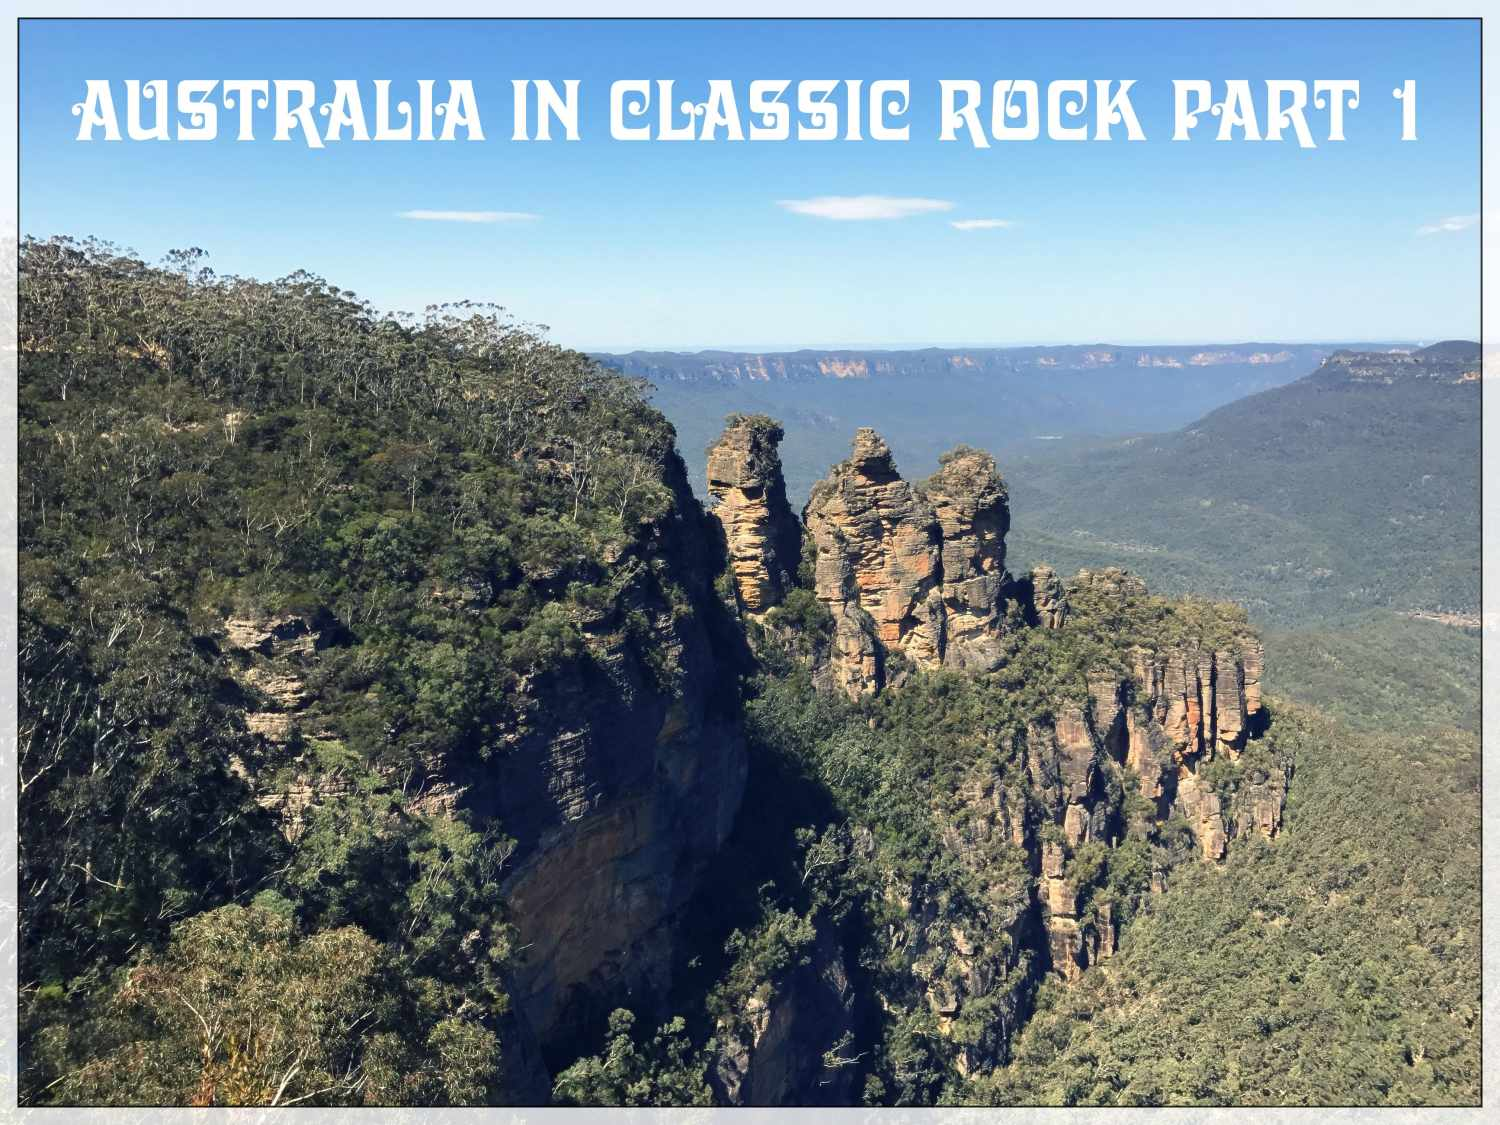 The Diversity of Classic Rock: Australia in Classic Rock Part 1